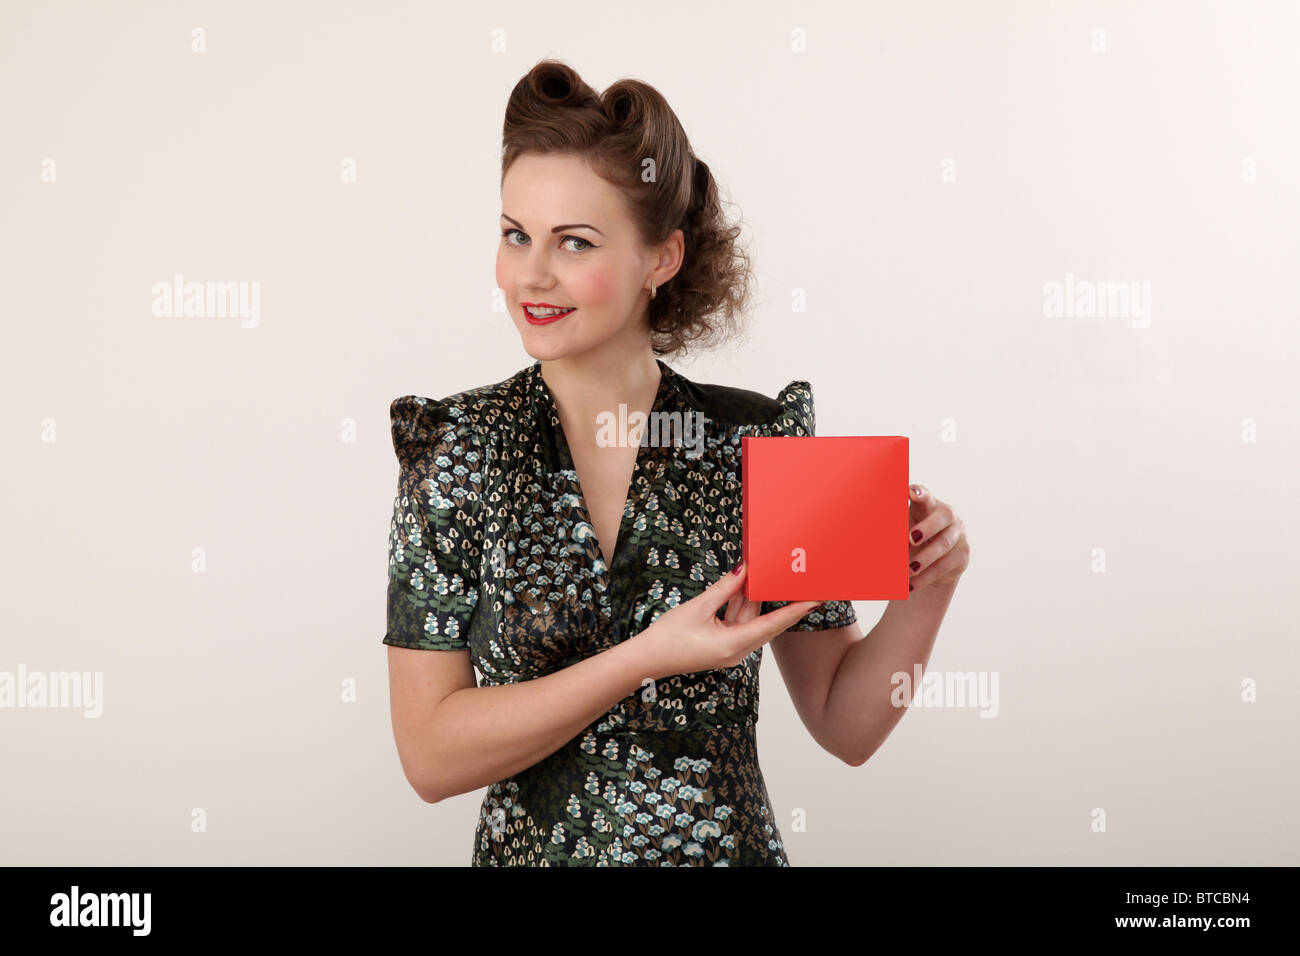 Retro housewife holding a red carton - Stock Image